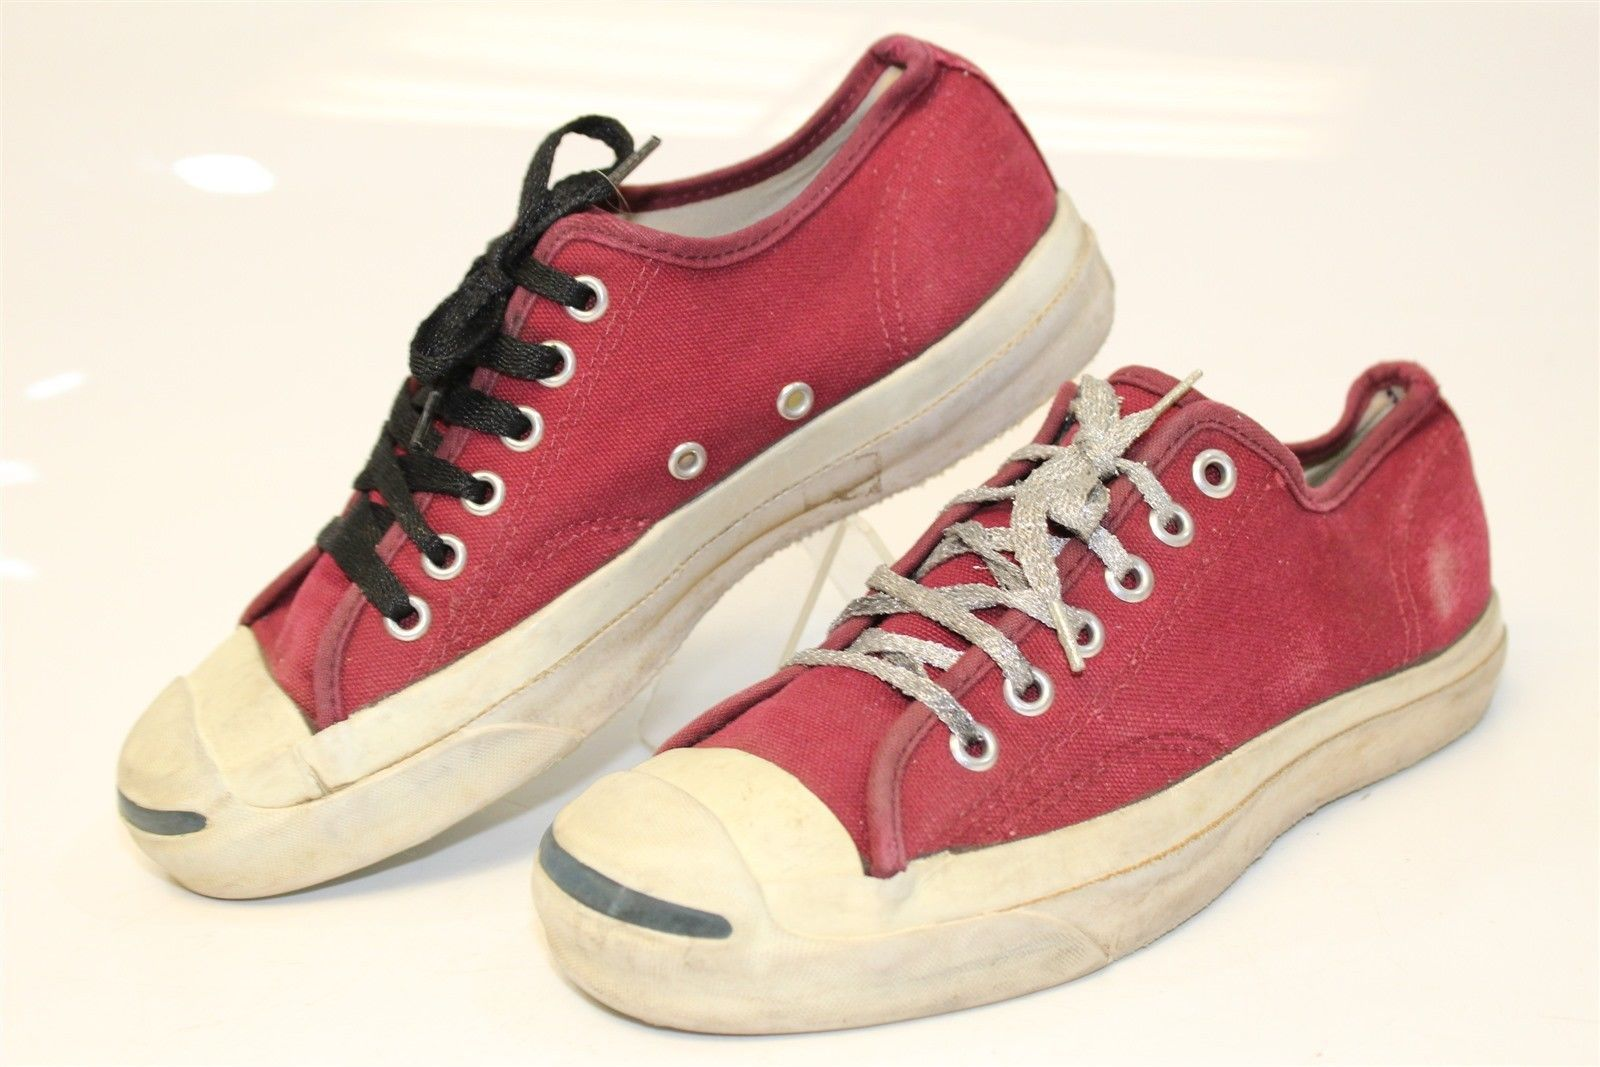 13c6b0e52ead Converse Jack Purcell Vintage USA MADE Men s 5.5 Low Top Sneakers Shoes eg